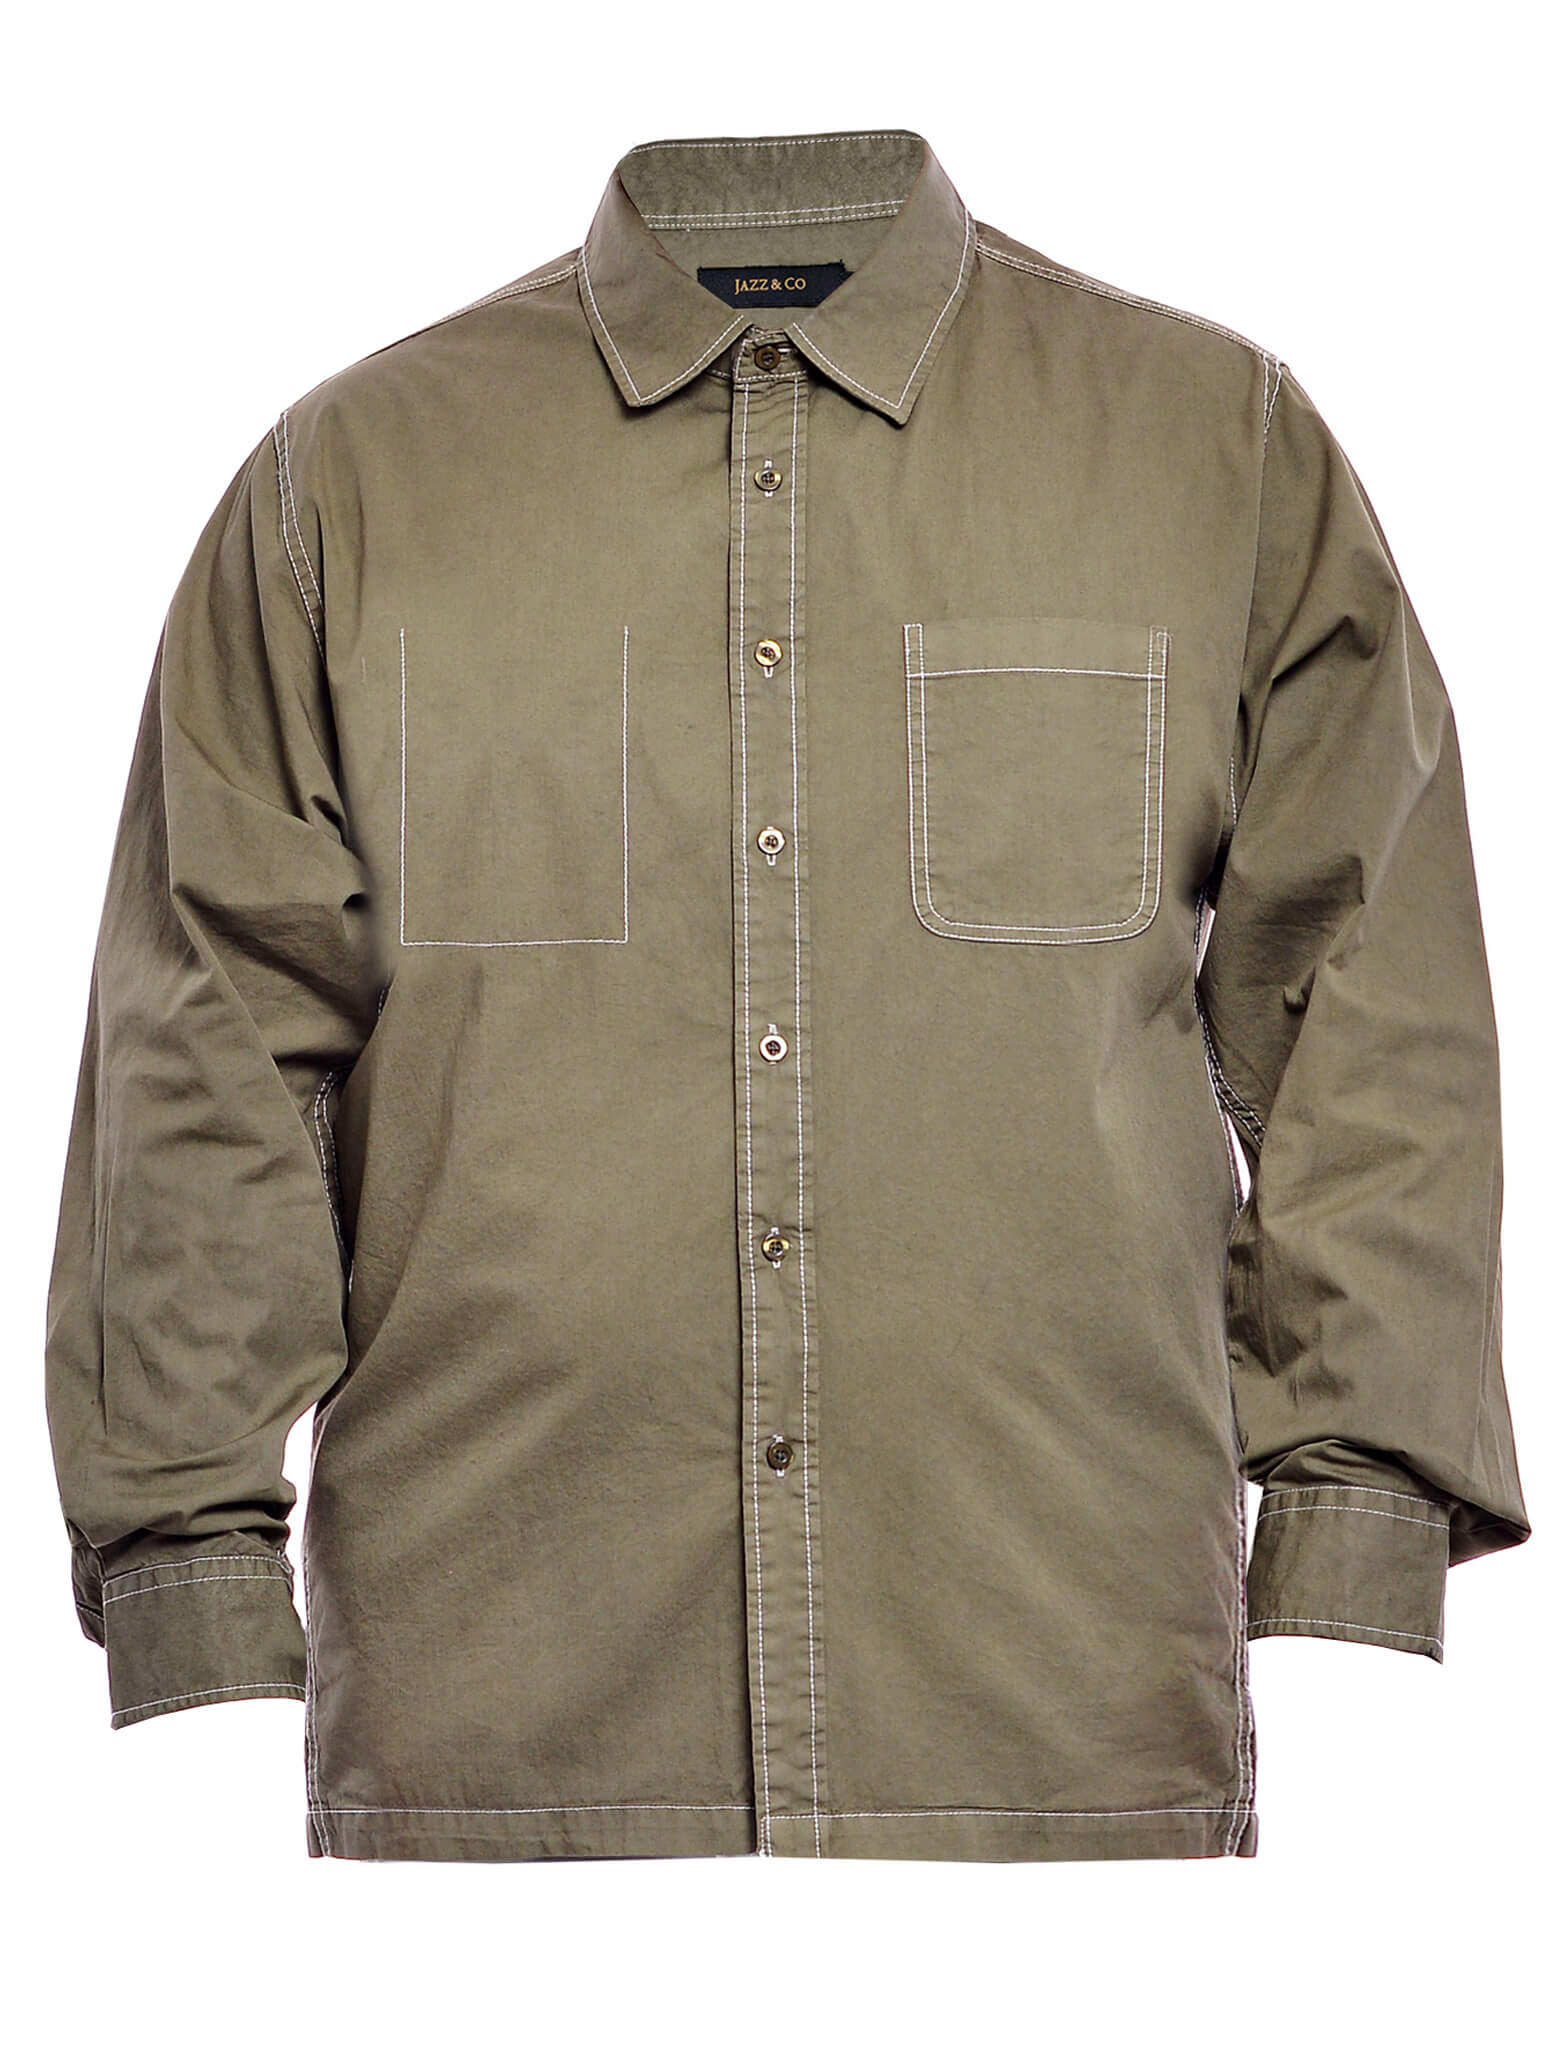 Jazz & Co Men Plus Size Long sleeve shirt in Olive